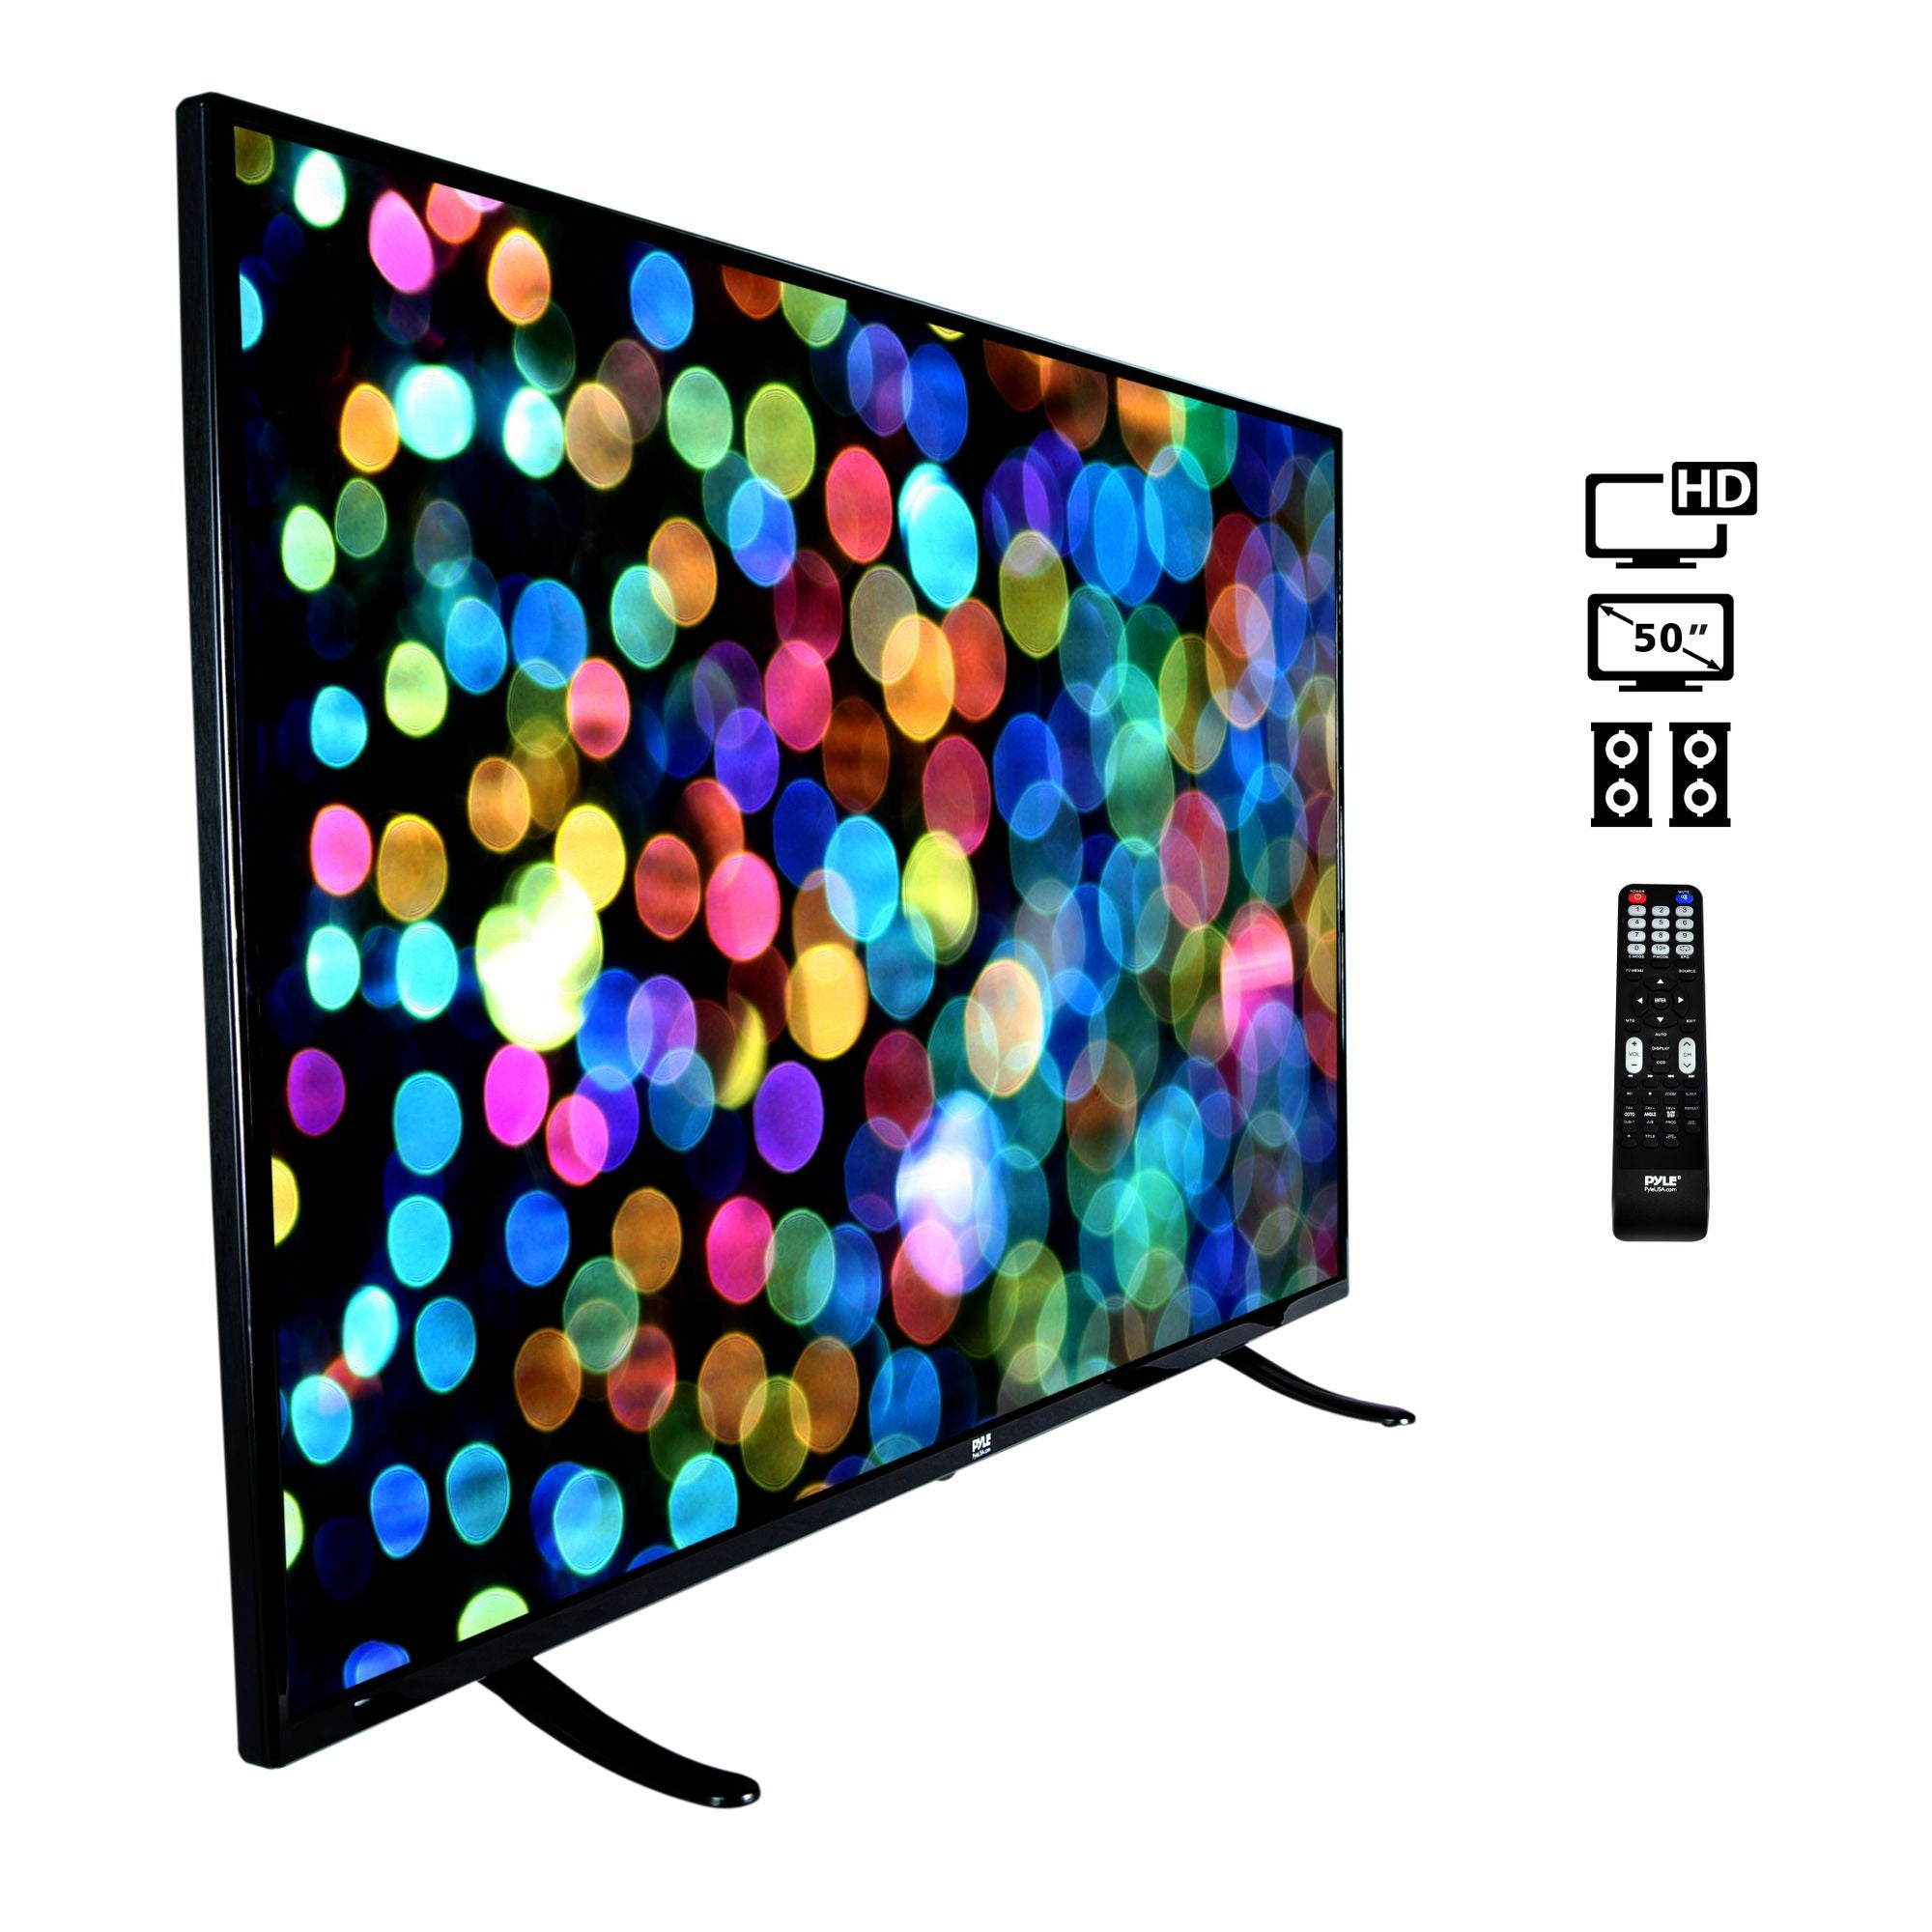 Pyle 50-Inch 1080p Ultra HD TV |  Hi Res Widescreen Monitor | Audio Streaming | Mac PC | Stereo Speakers | Wall Mount (PTVLED50)